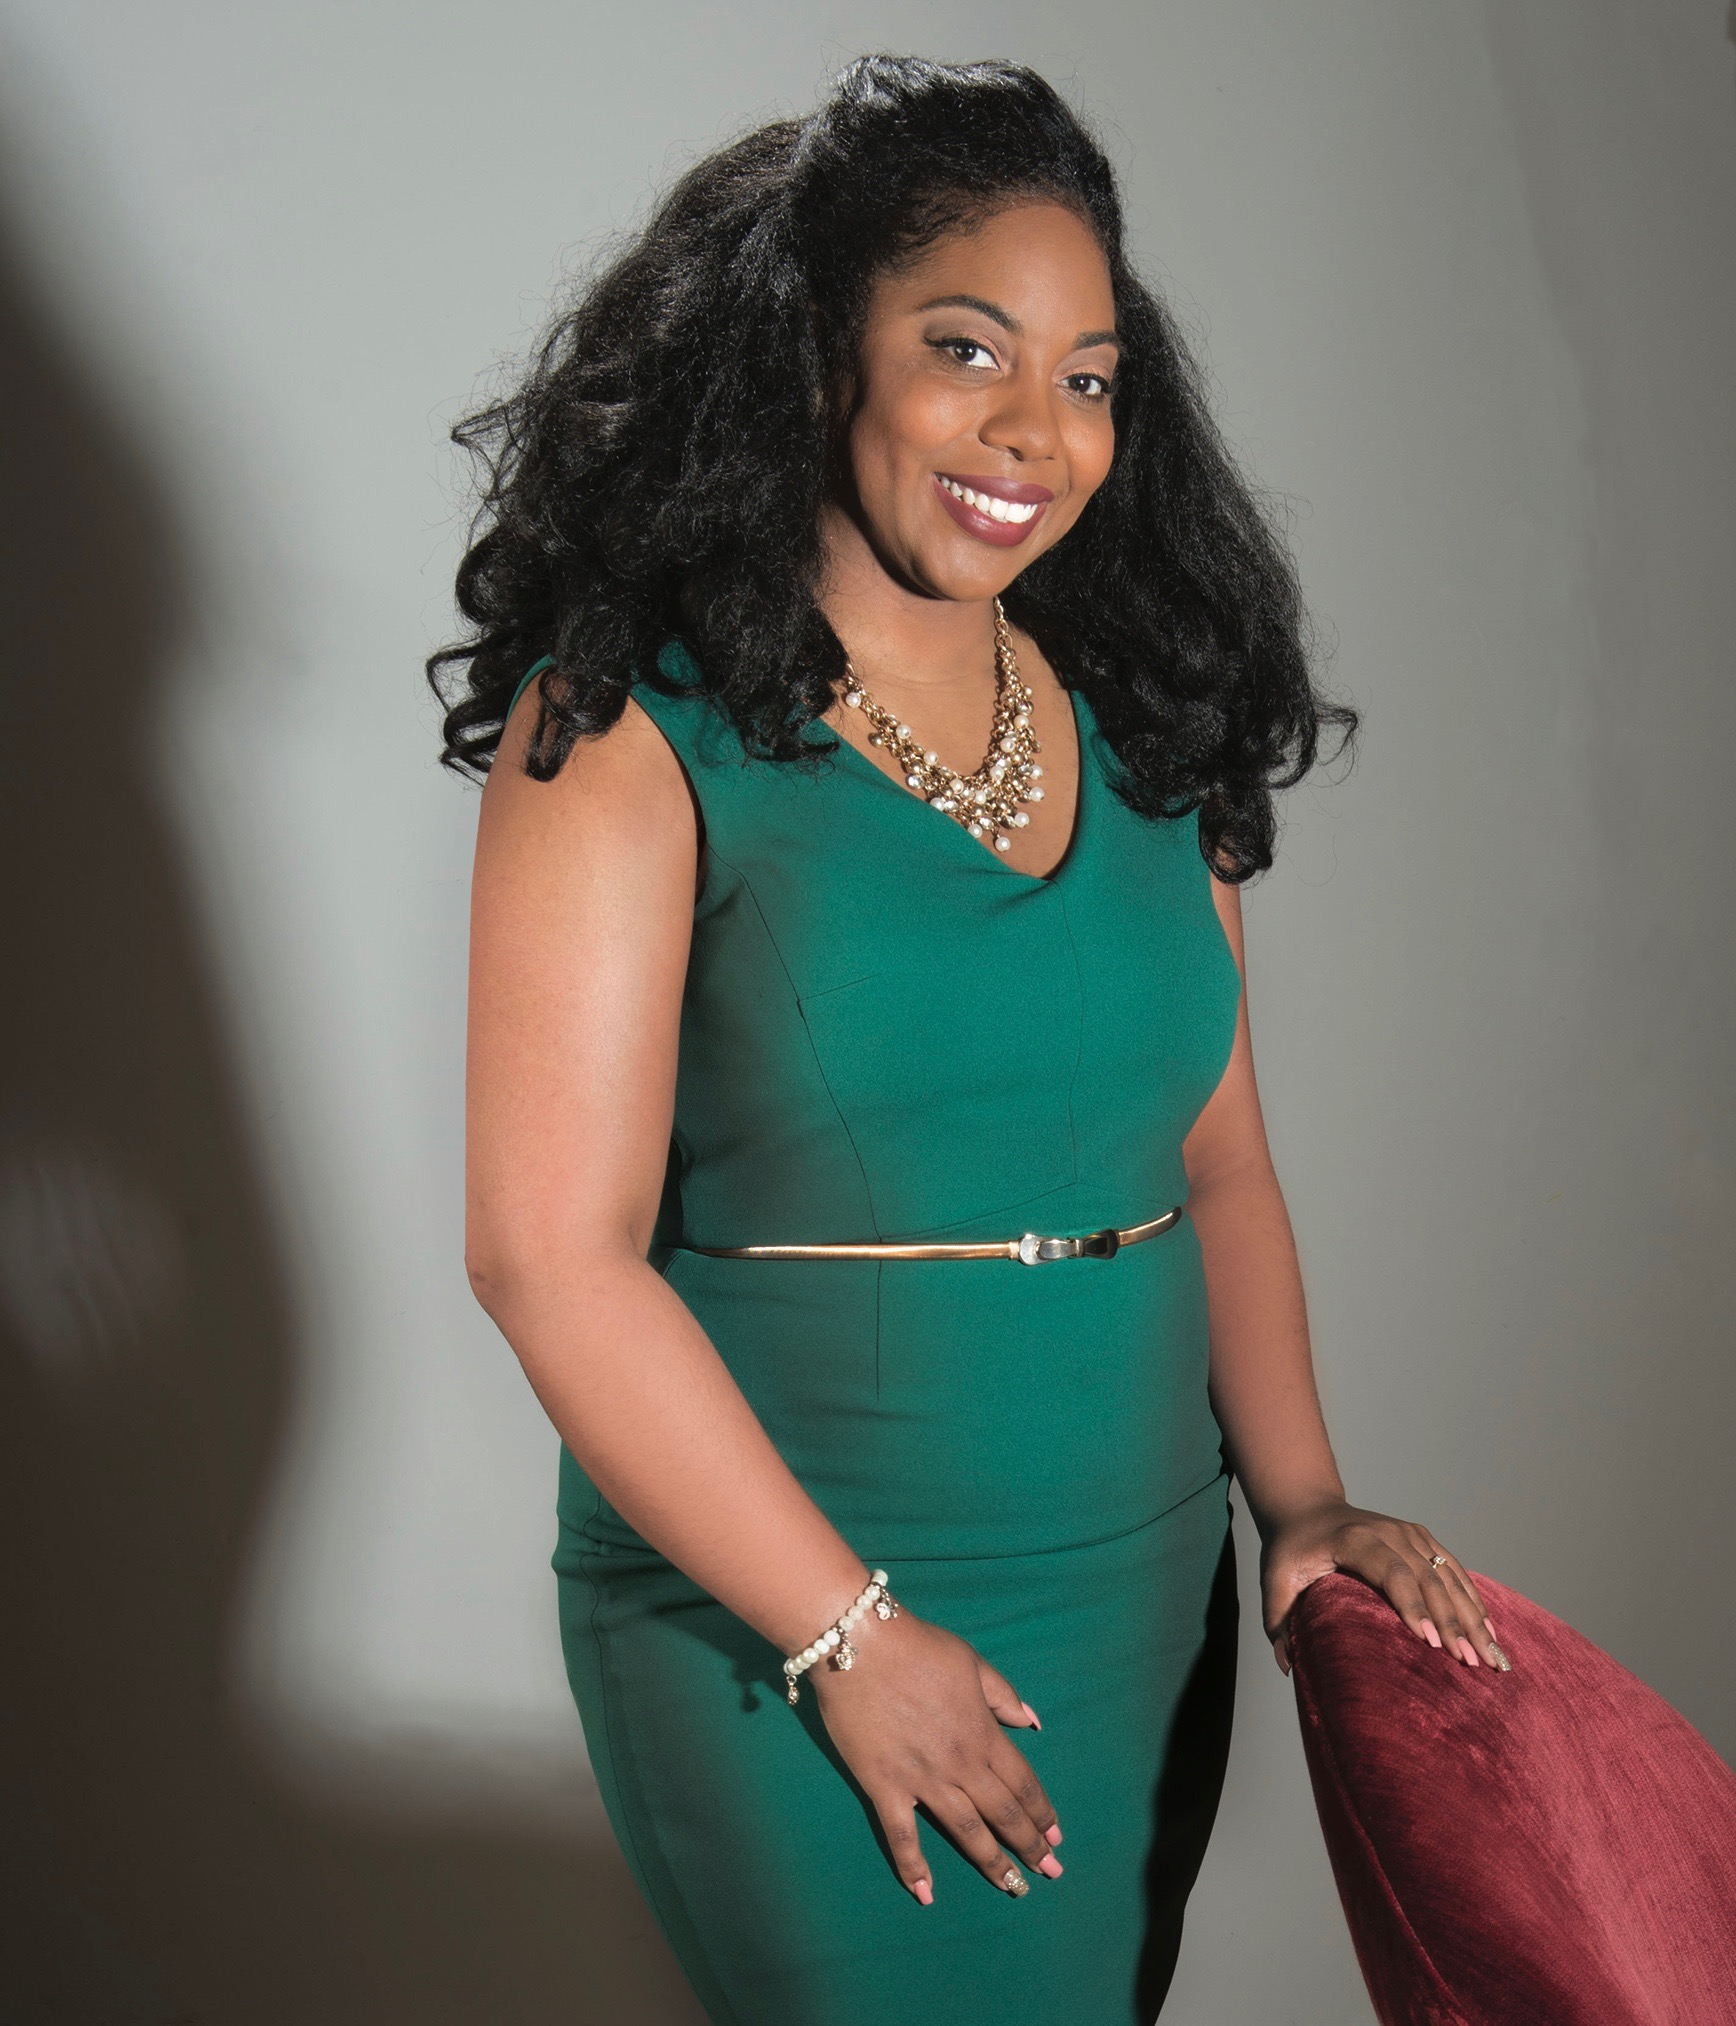 Millennial on the Move Karlaa V. Williams